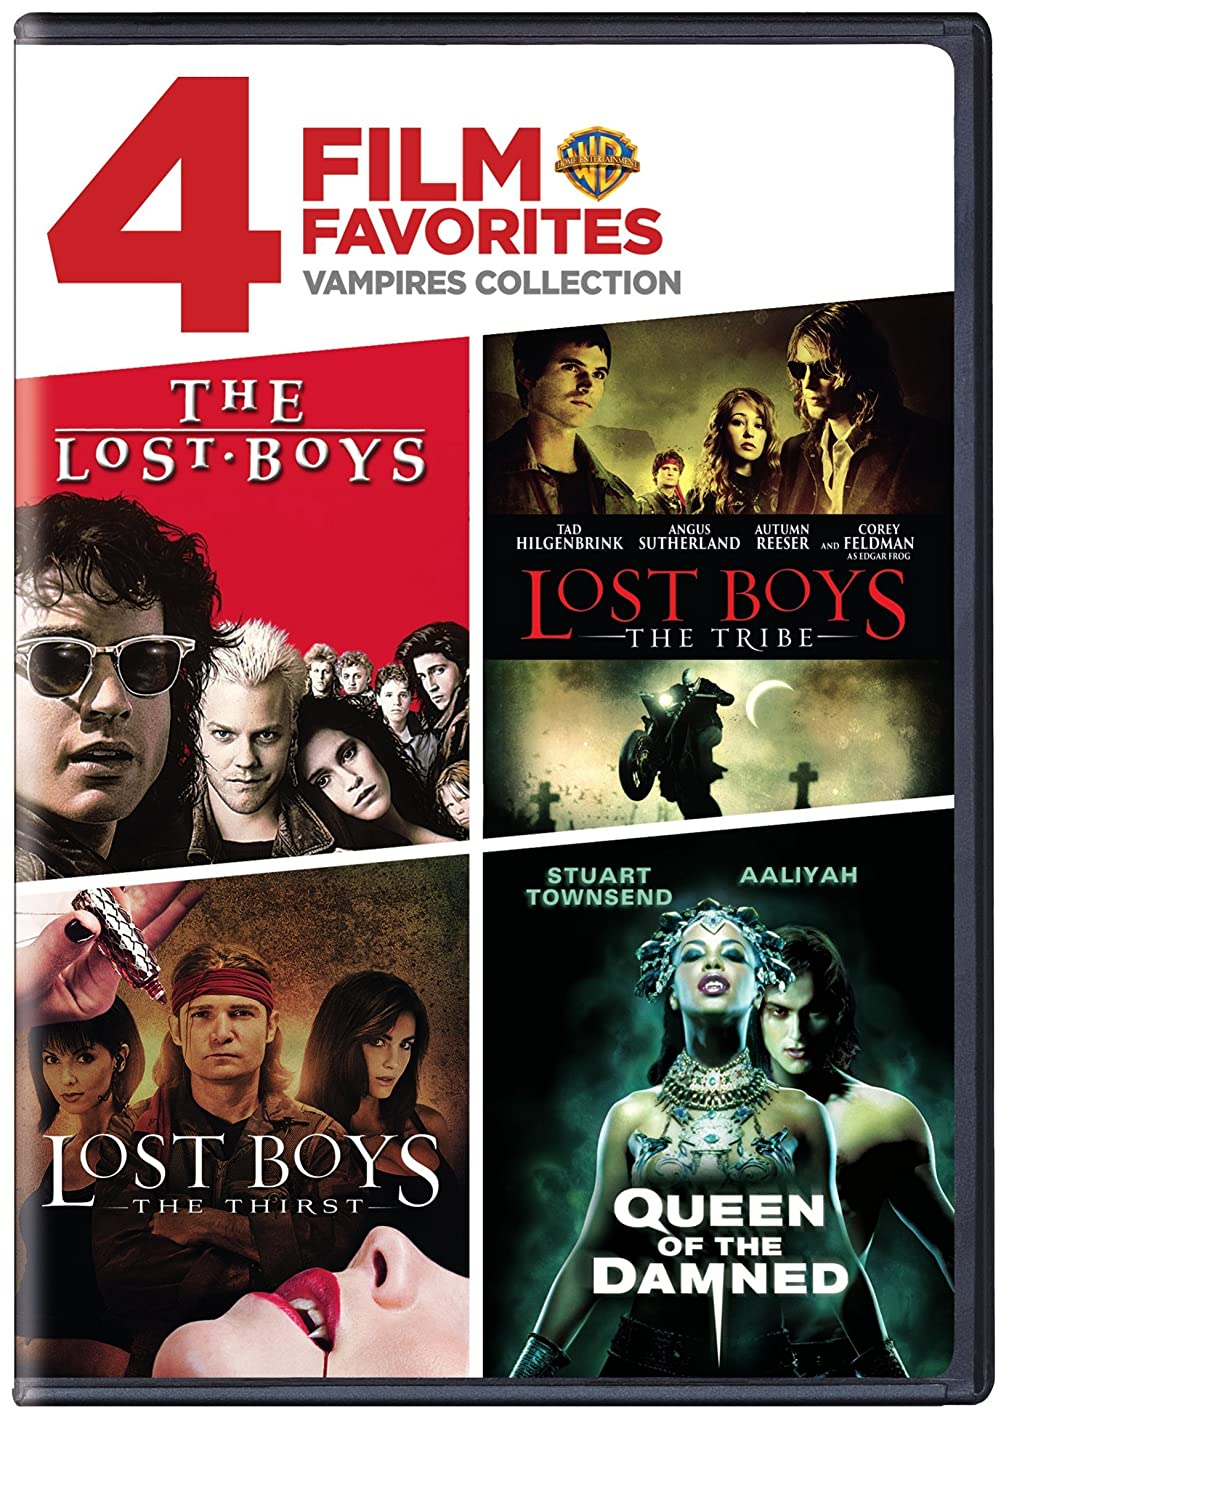 Amazon Com 4 Film Favorites Vampires The Lost Boys Lost Boys The Thirst Lost Boys The Tribe Uncut Queen Of The Damned Movies Tv